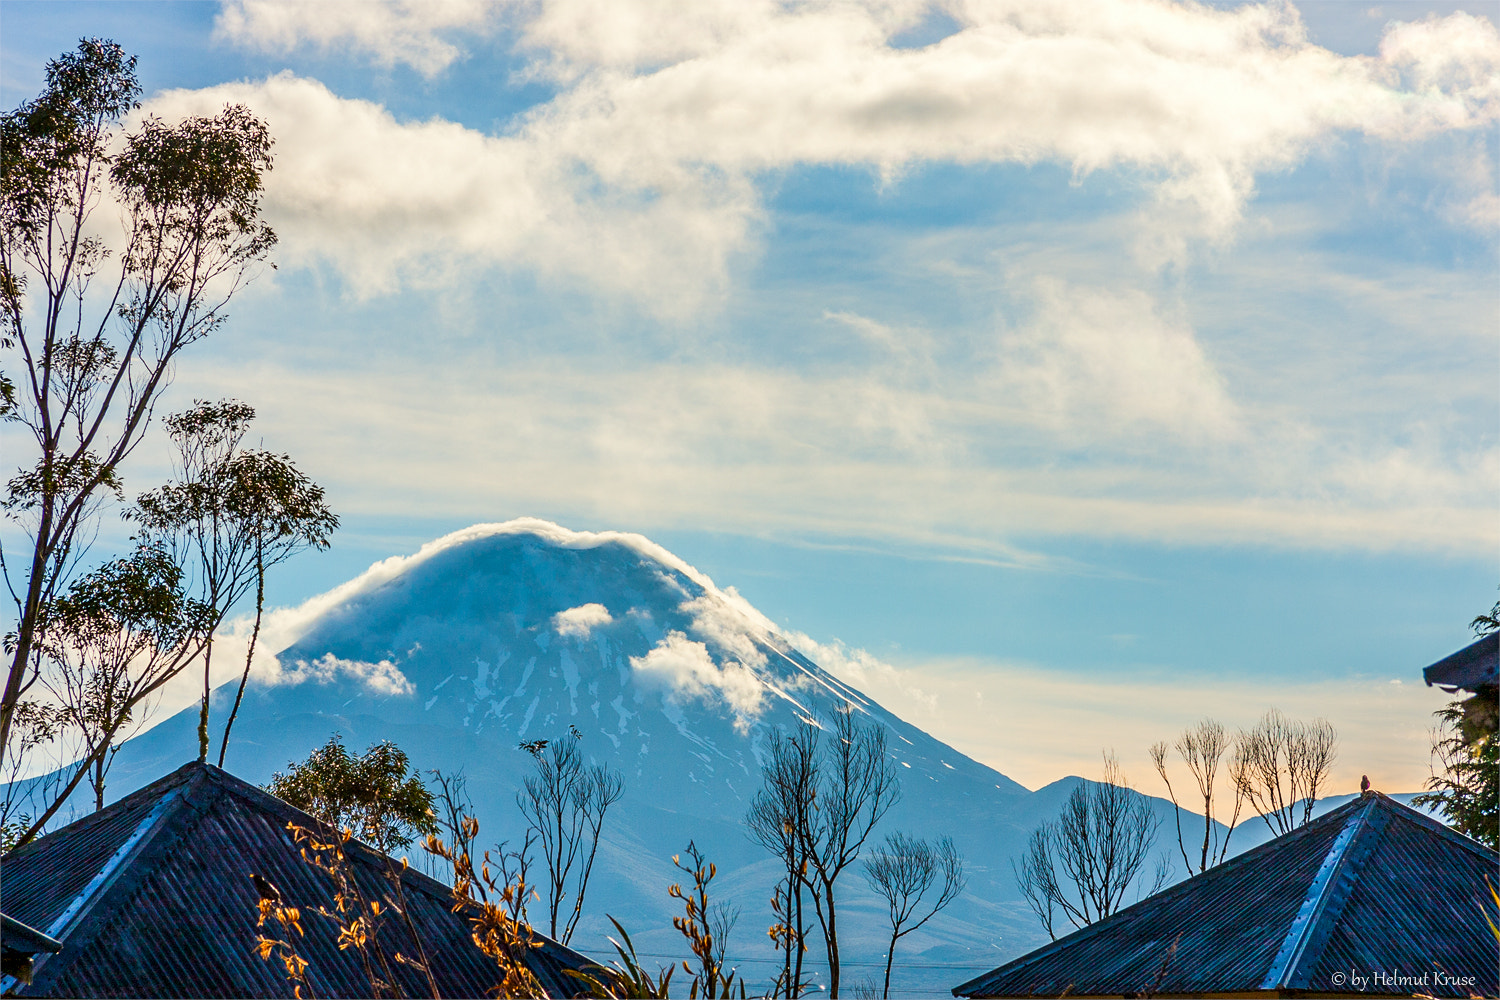 Photograph Mt. Tongariro in the Clouds New Zealand by Helmut Kruse on 500px